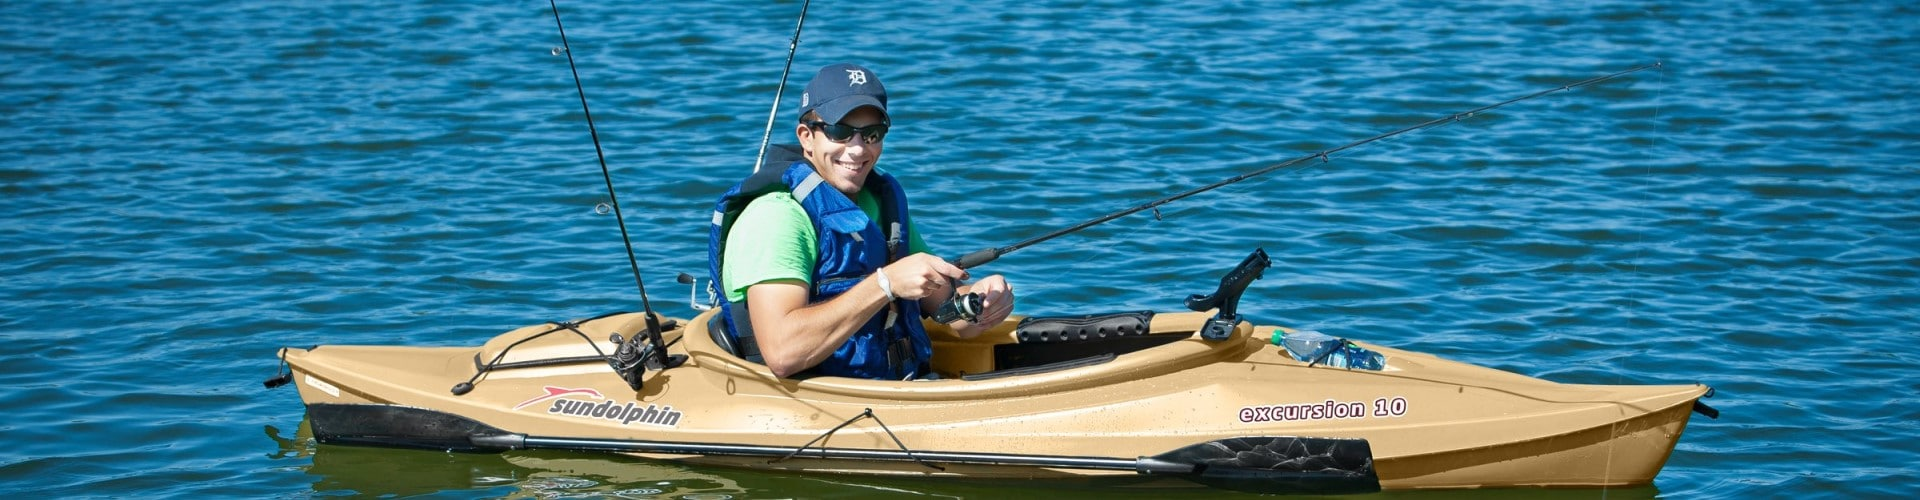 Best Fishing Kayaks Under $500 Reviewed in Detail